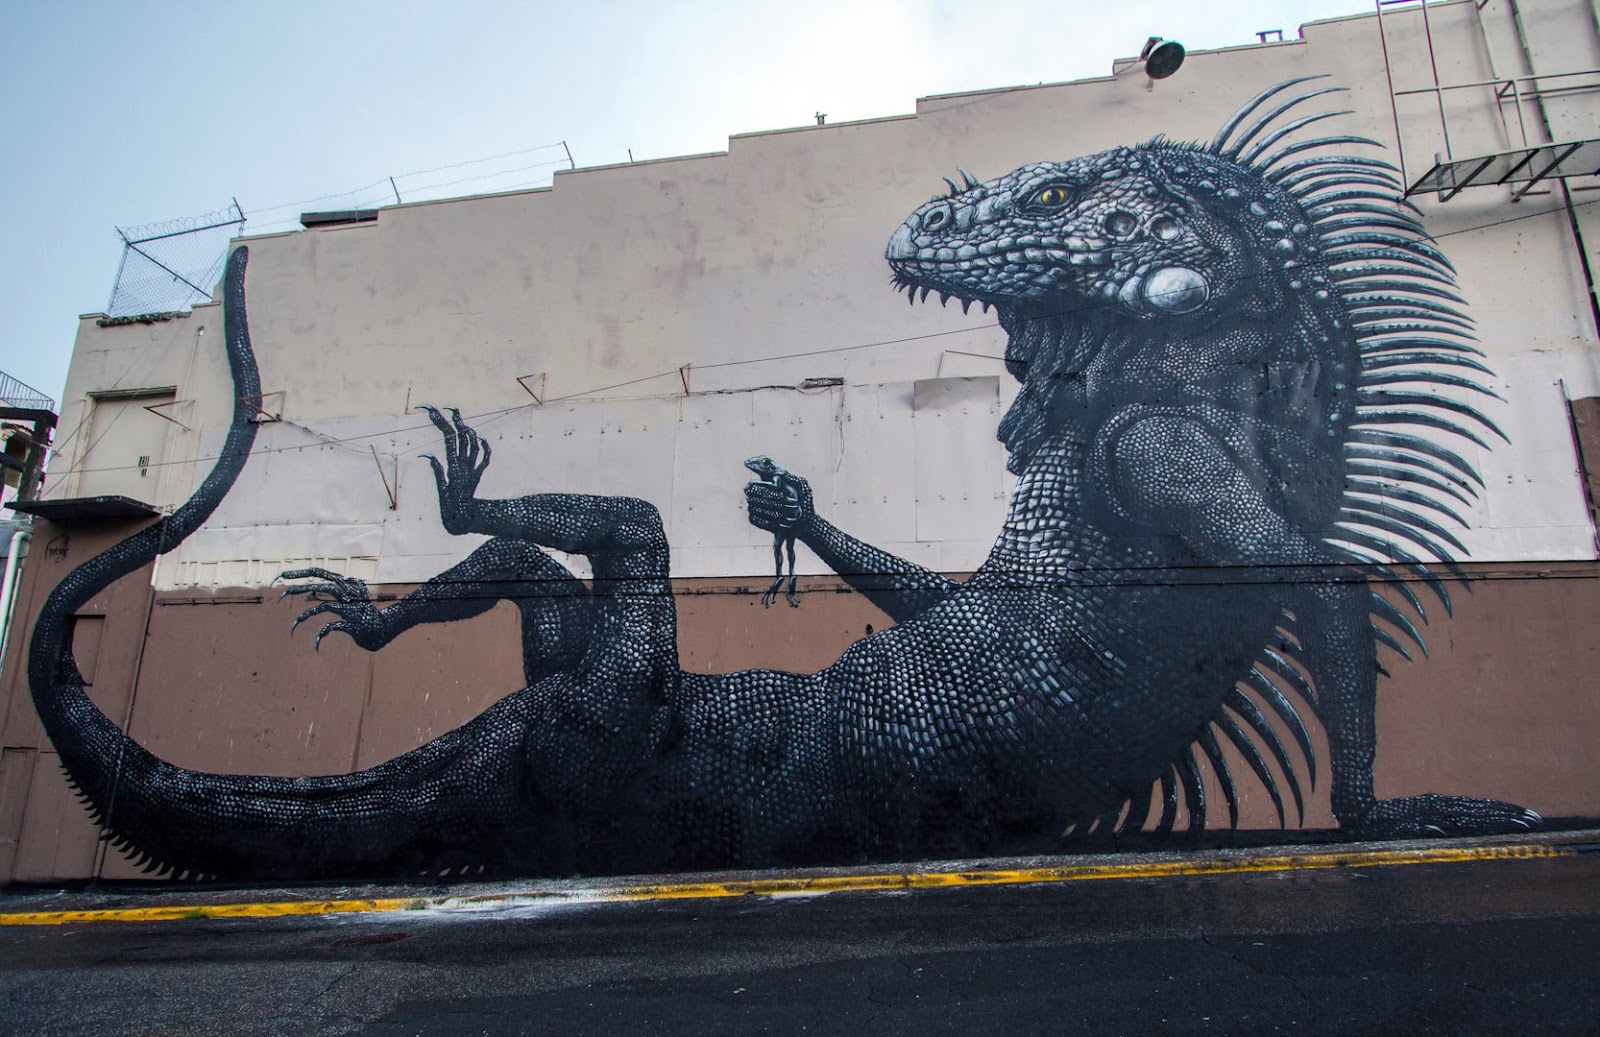 Roa new mural in san juan puerto rico streetartnews for Best mural artist